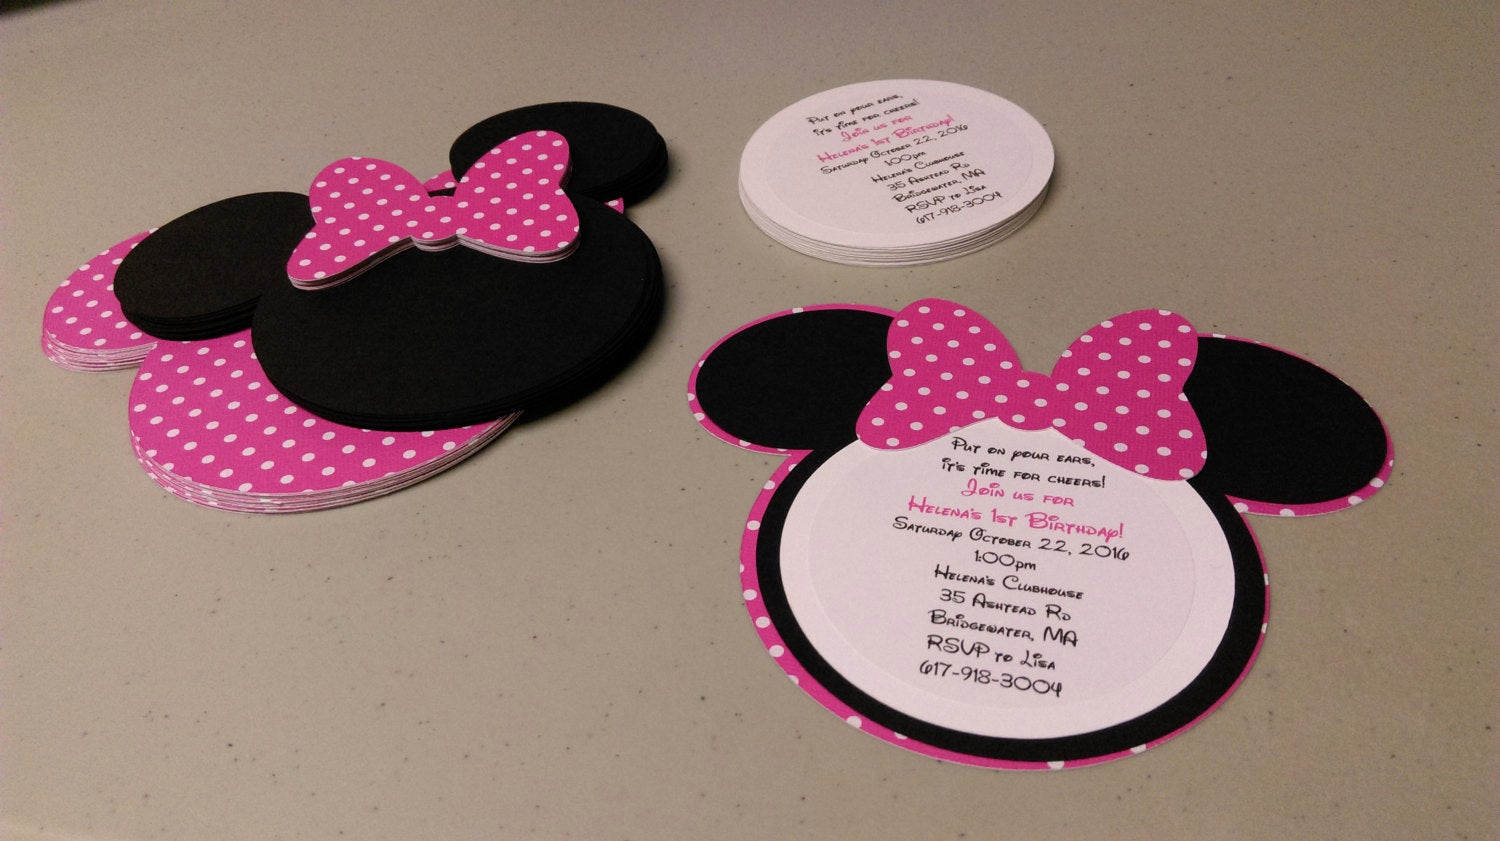 Diy Minnie Mouse Invitation Lovely Diy Minnie Mouse Invitations In Bold Pink and White Polka